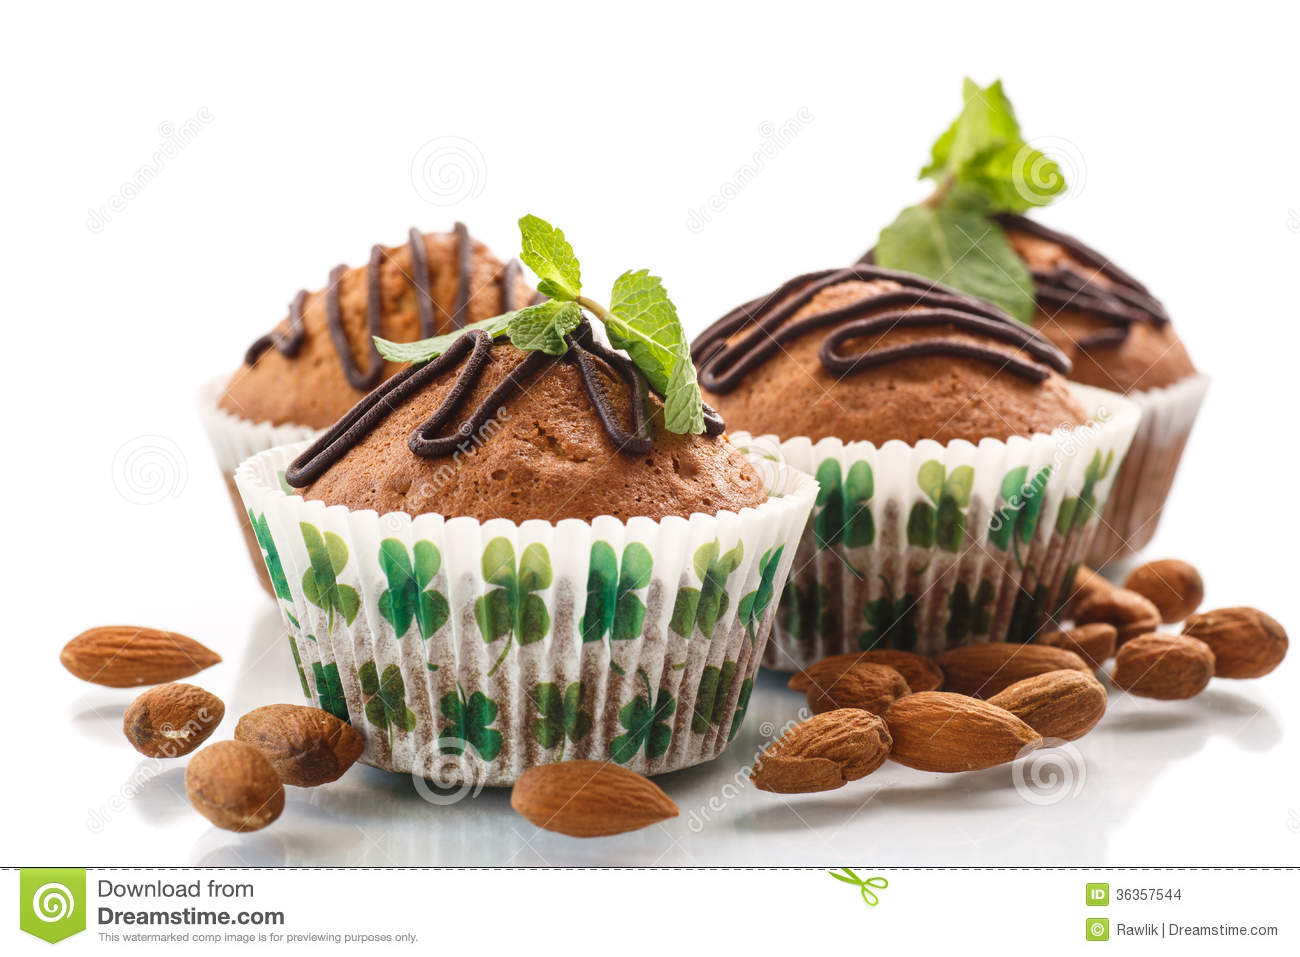 Decorated chocolate muffins